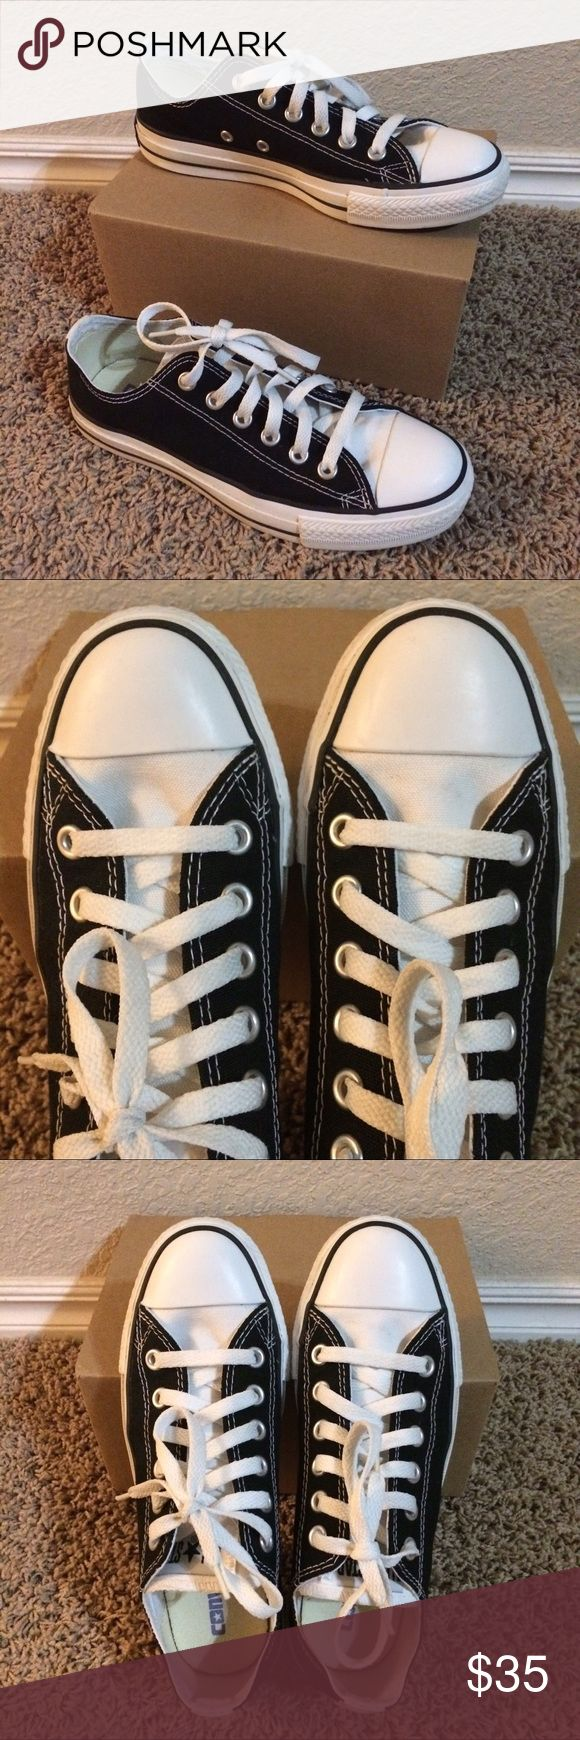 Converse Chuck Taylor black w/ white tongue shoes These are a cute pair of Converse Chuck Taylor All-Star sneakers. They are black with white tongues and a thick white stripe down the back. These seem like a unique style; I've never seen any like them in a store since I bought mine. They've only been worn a time or two and don't show any wear. They are a size 6.5 but run a little bigger than my other Chuck Taylors and should fit someone who's usually a 7 in Chucks. This is a great pair of…